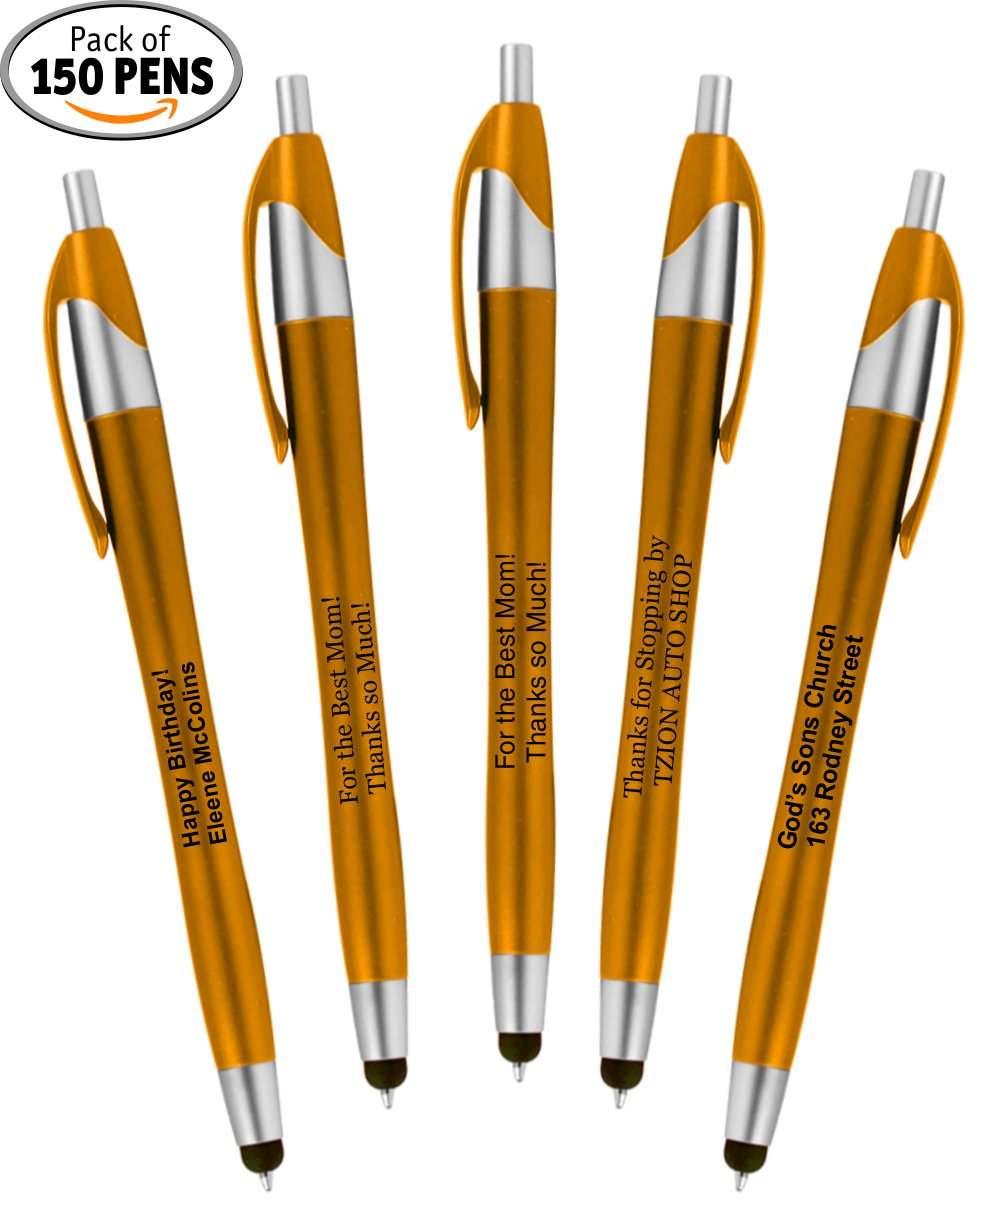 Personalized Writing Ink Ballpoint Novelty Pens, Custom Printed with Your Logo & Text''Click to Write - Click for Stylus Tip!'' Works with Android, iPhone, iPads (Pack of 150 Pens - Orange Barrels)